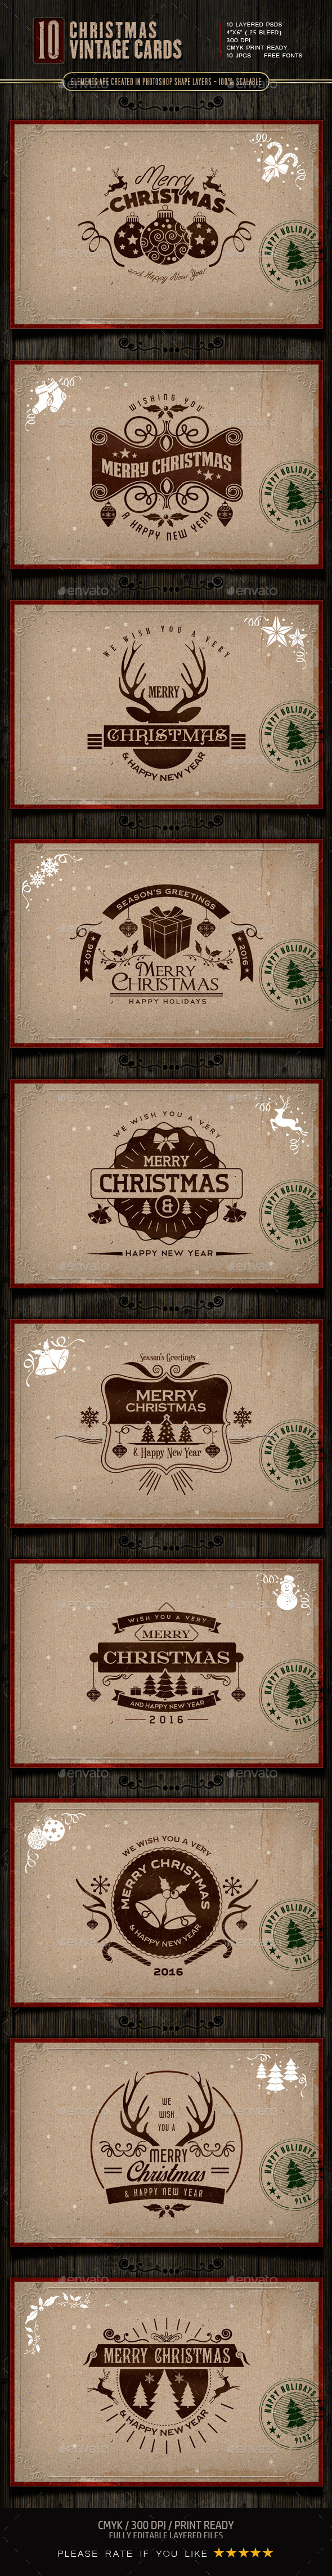 Retro / Vintage Christmas Cards - Holiday Greeting Cards